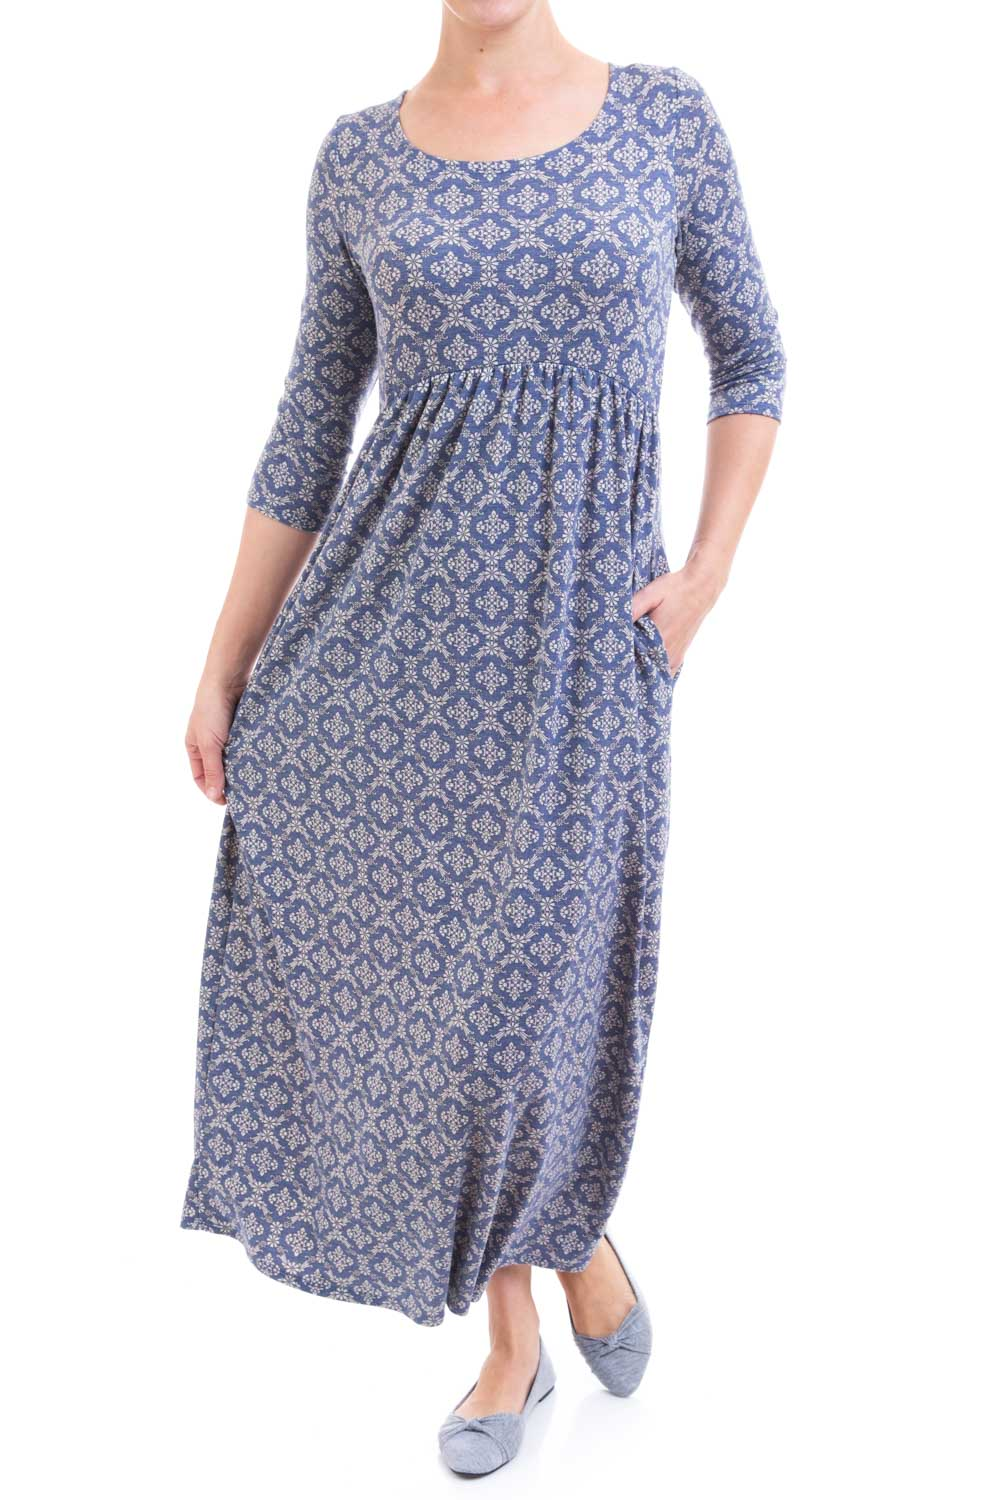 Type 2 Cozy Comfy Dress In Navy and Grey Floral